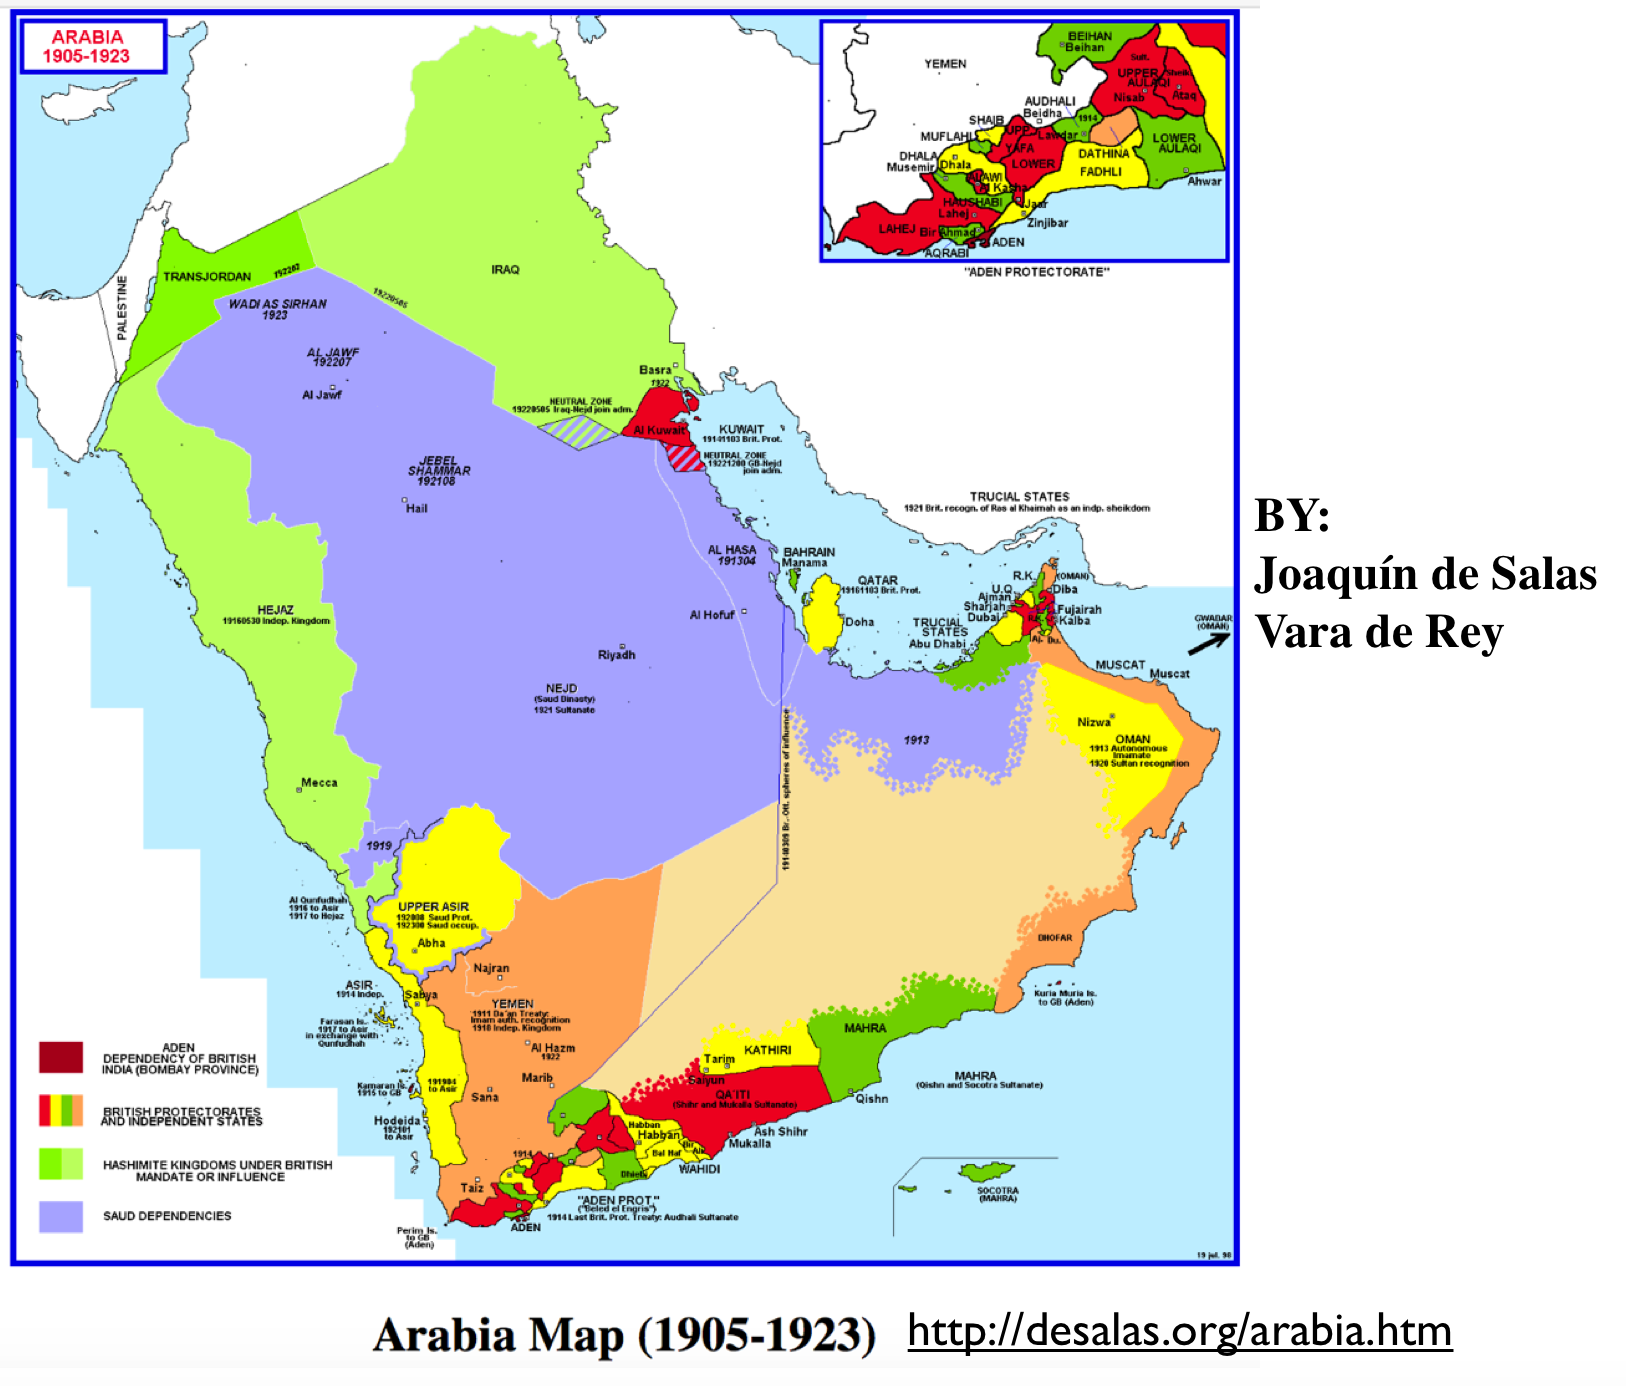 a history of the kingdom of saudi arabia and its political system One reason is the kingdom's history it has now been more than half a century since that speculation began and saudi arabia has not changed its regime as other countries in the region have shown all too clearly must work within a political system and culture few americans.